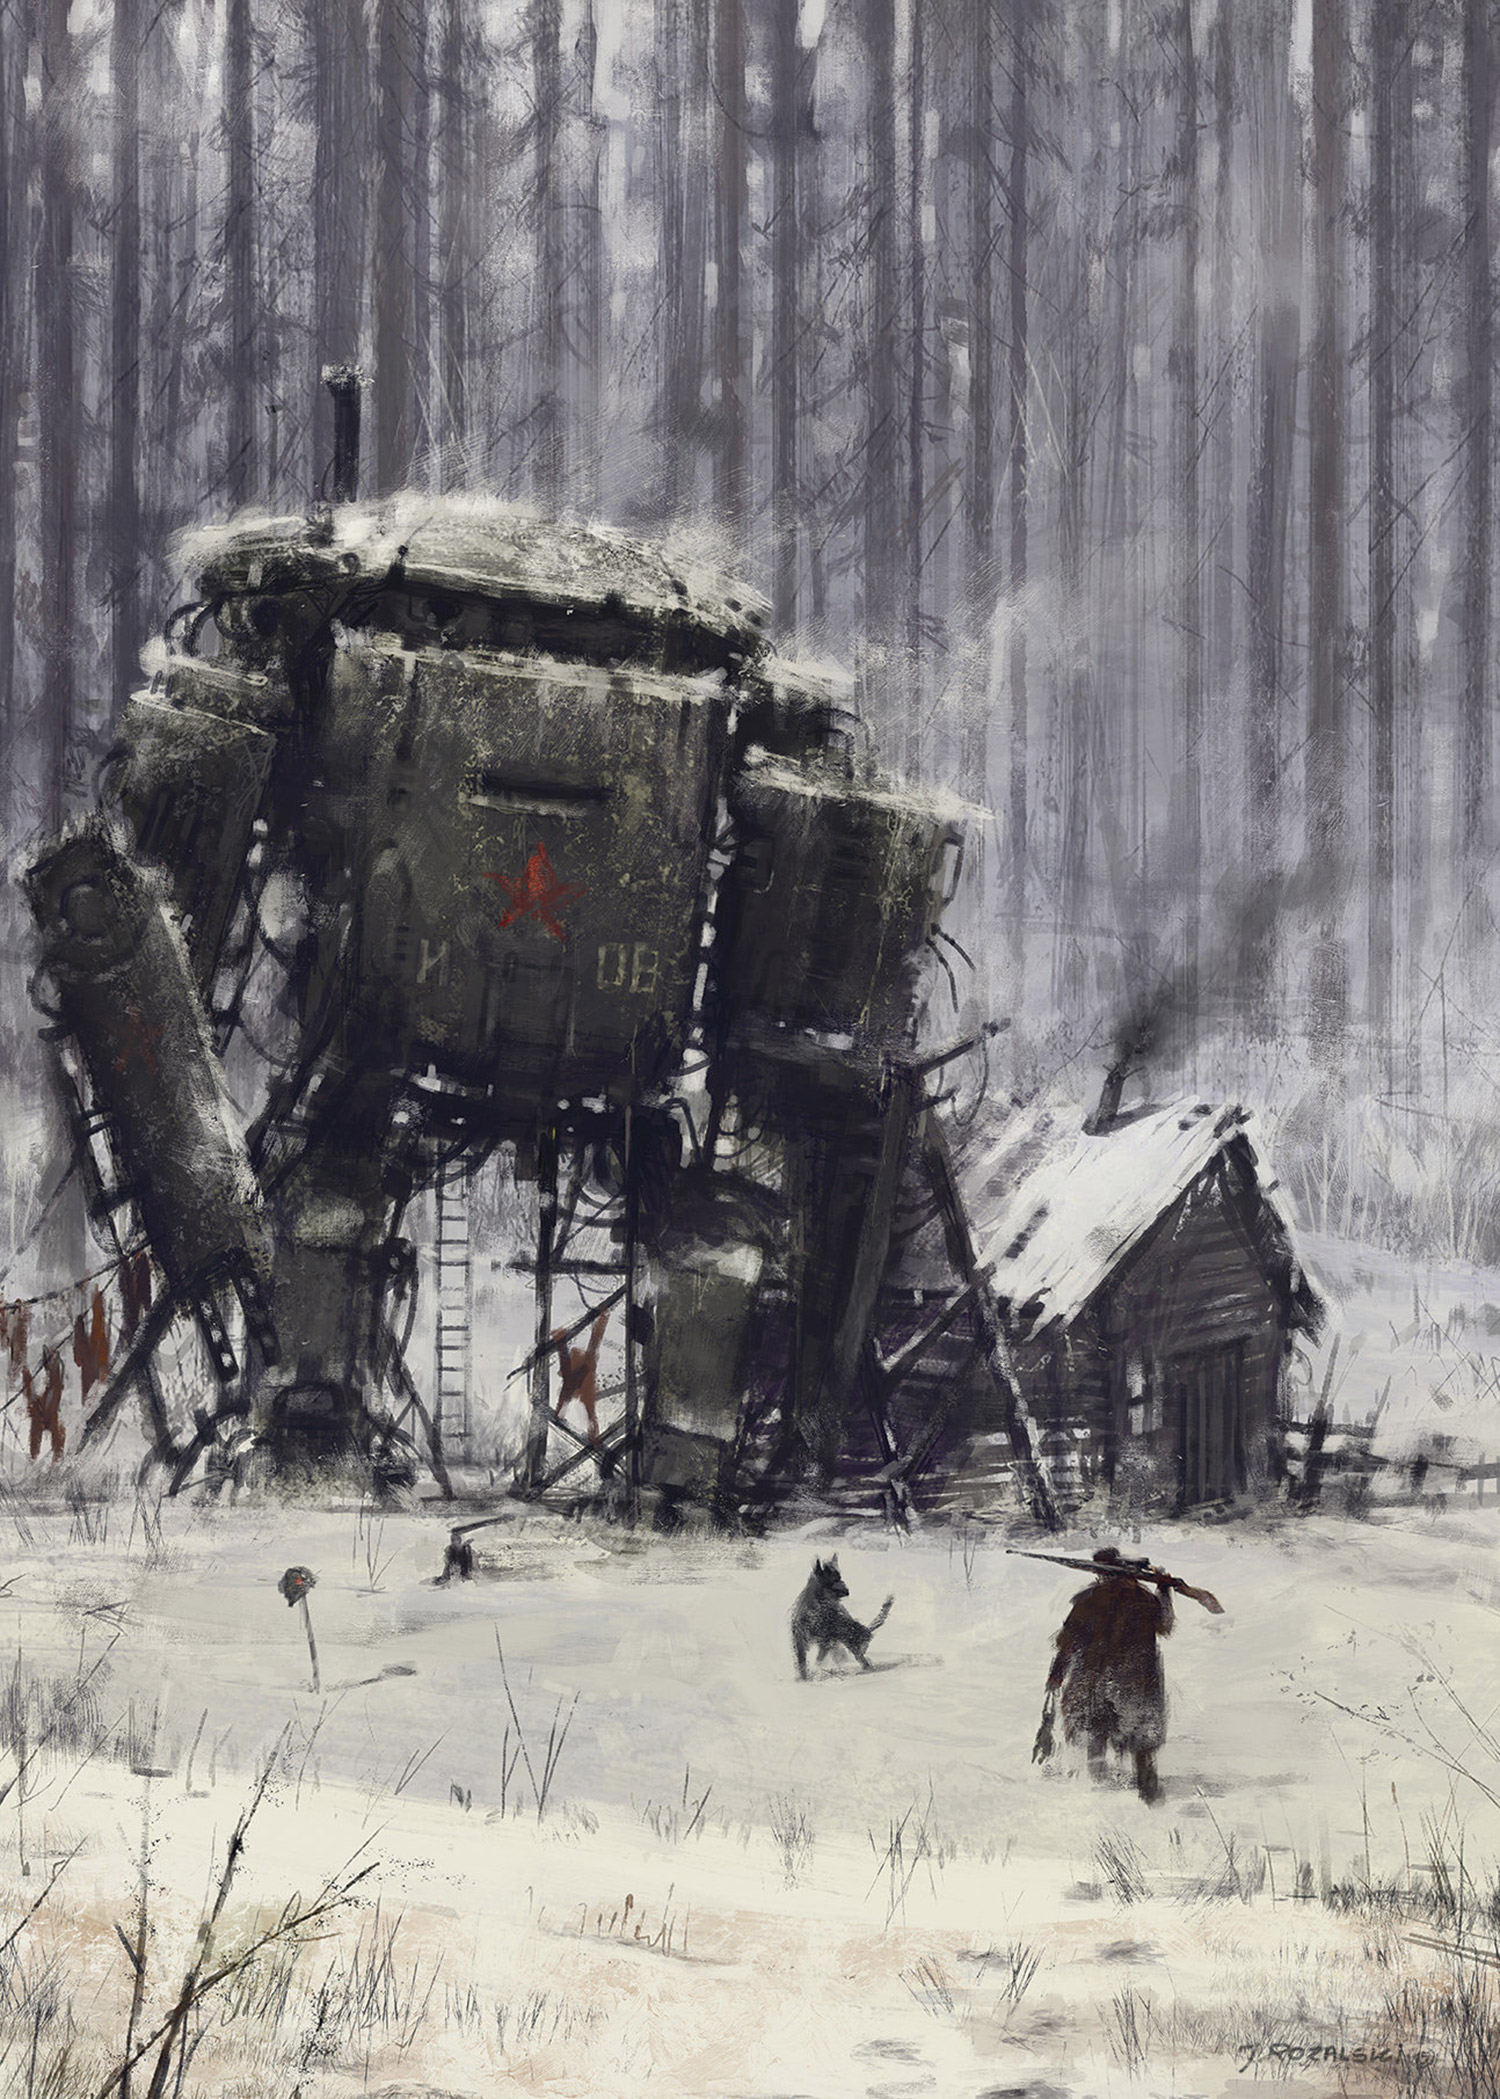 Jakub Rozalski - 1920, Retired Veteran